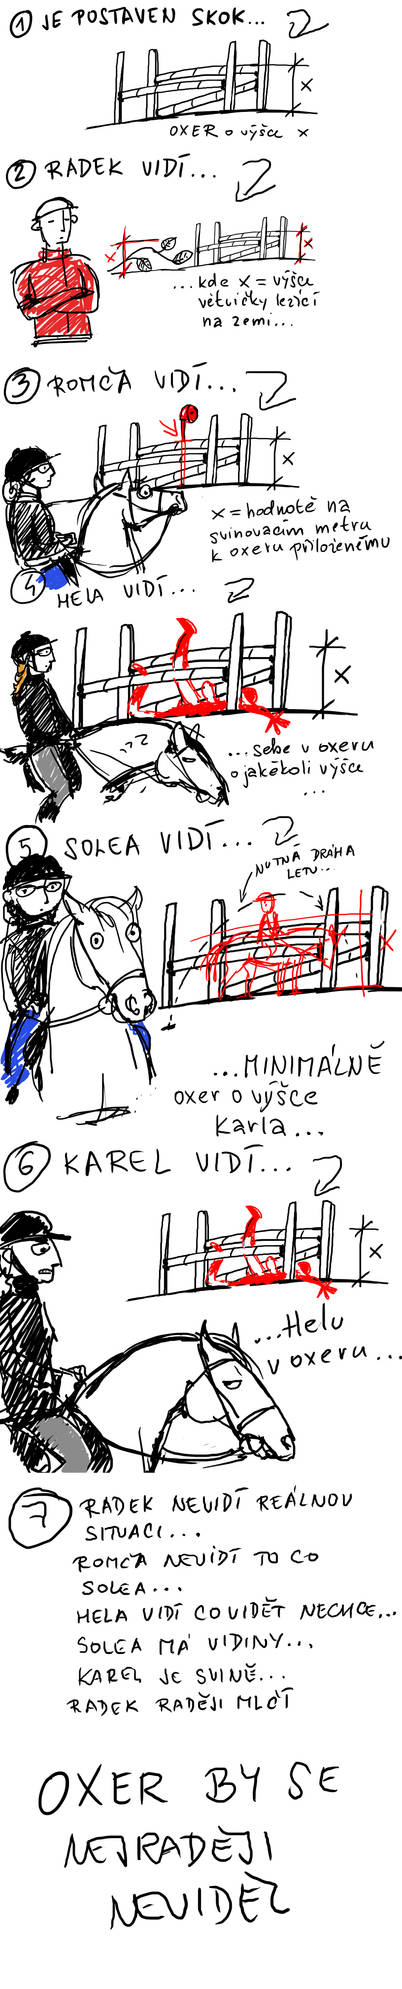 Important equestrian observation 3